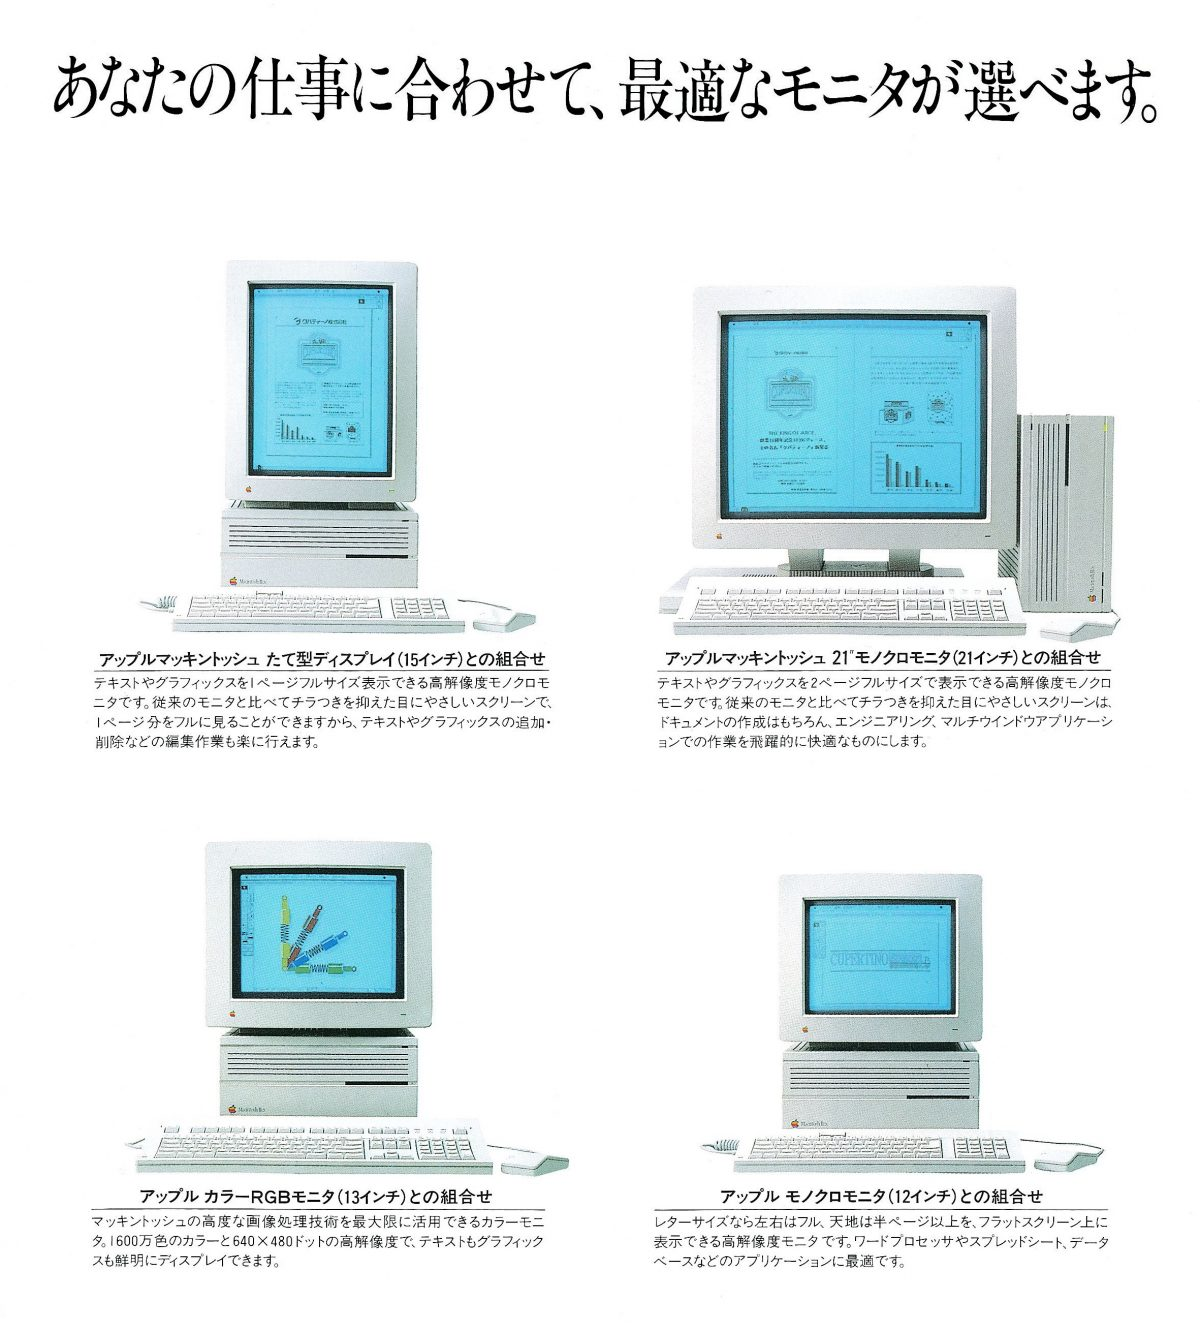 Macintosh IIcx and displays, Apple Japan